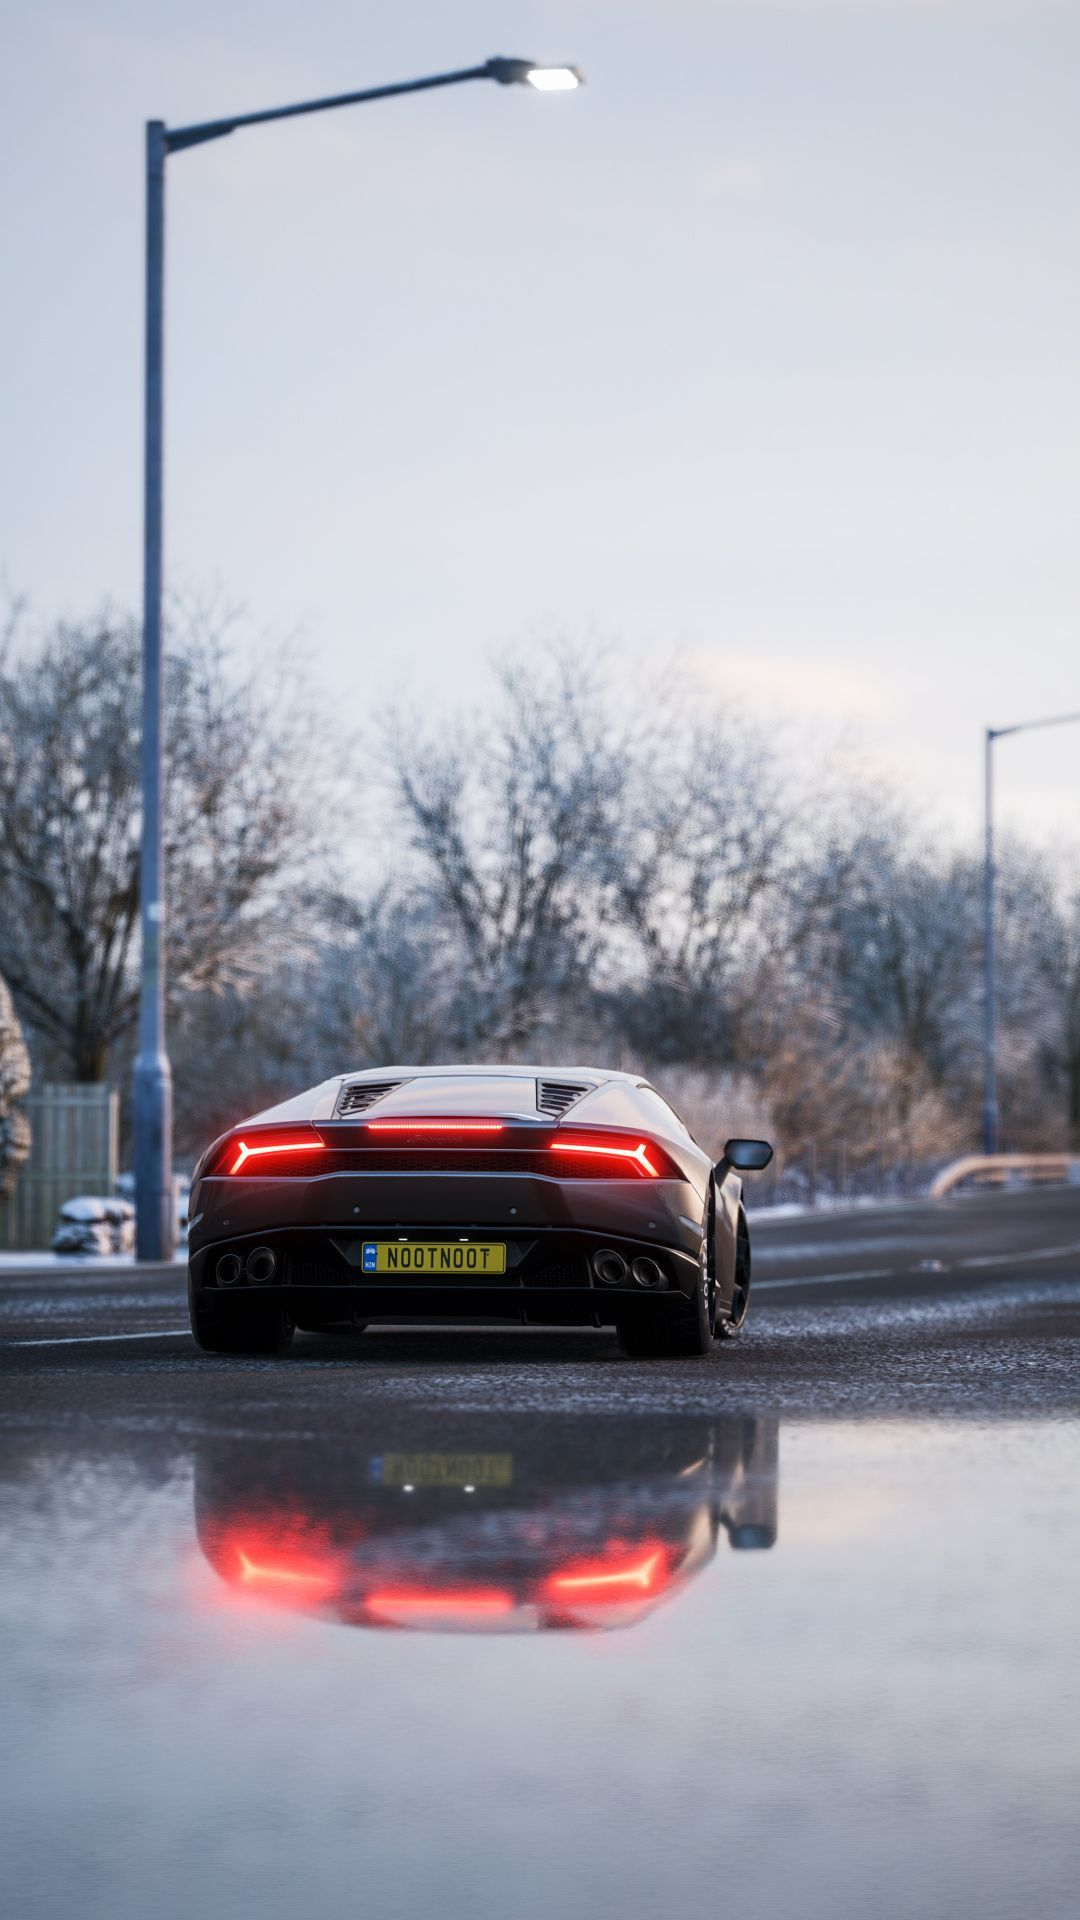 Lamborghini Wallpapers Supercar Horizon Sports Forza Car Rim Supercars Wallpaper Forza Horizon Forza Horizon 4